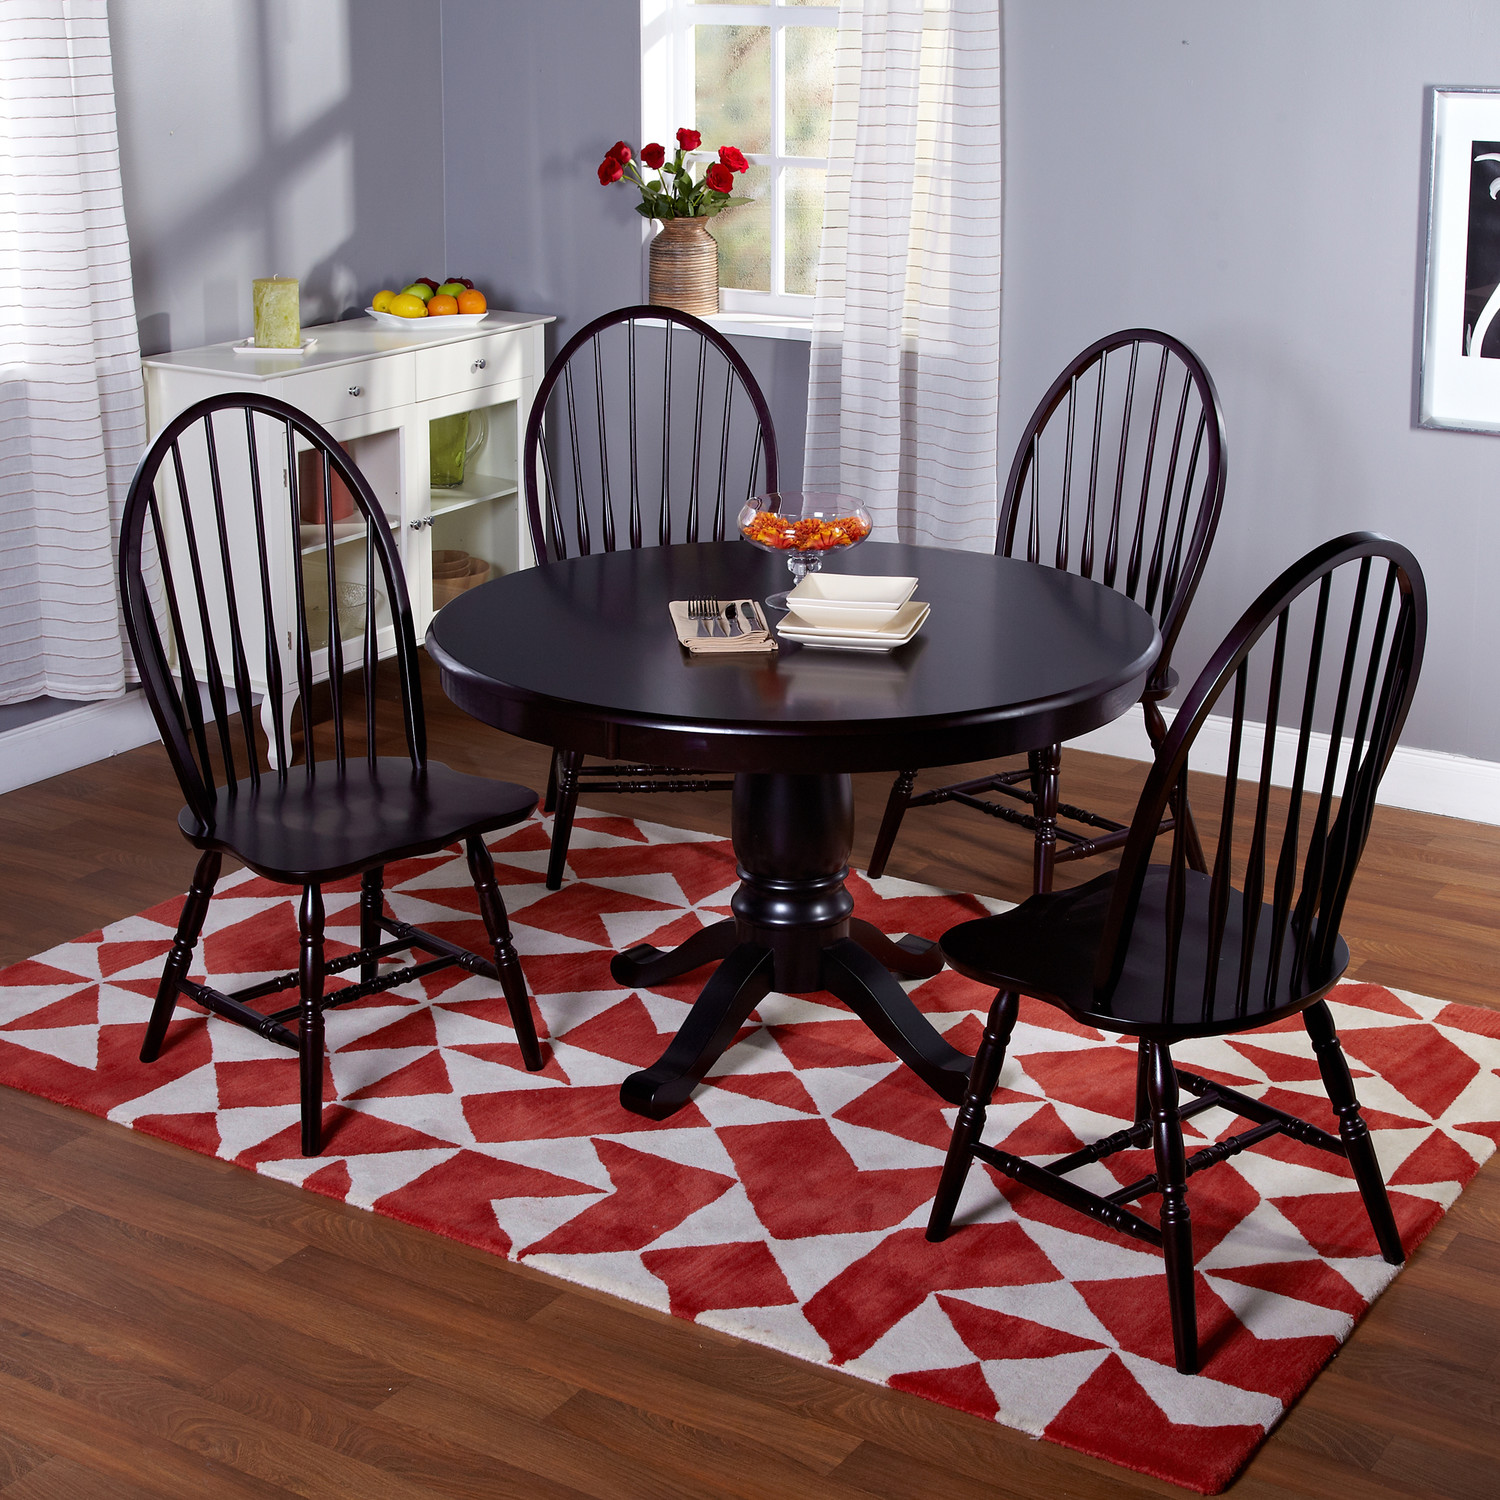 Round Comfy Chair Most Comfortable Dining Chairs For Your Longer Dining